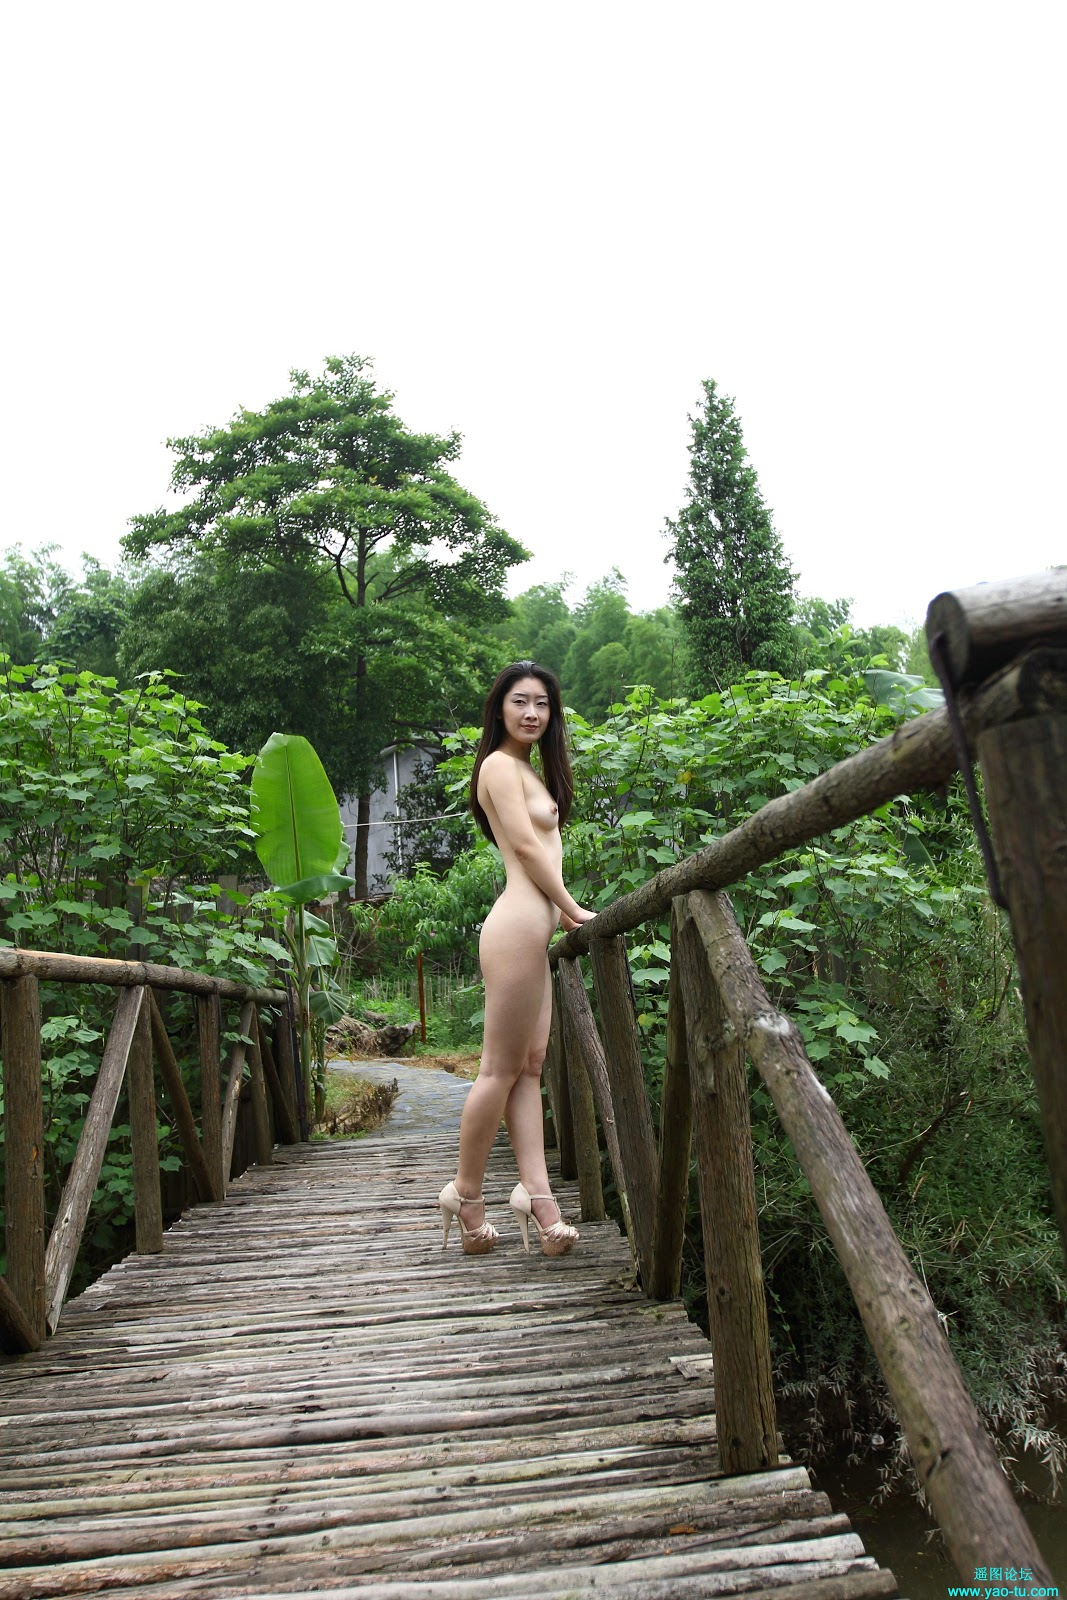 Chinese Nude_Art_Photos_-_245_-_XinRu.rar